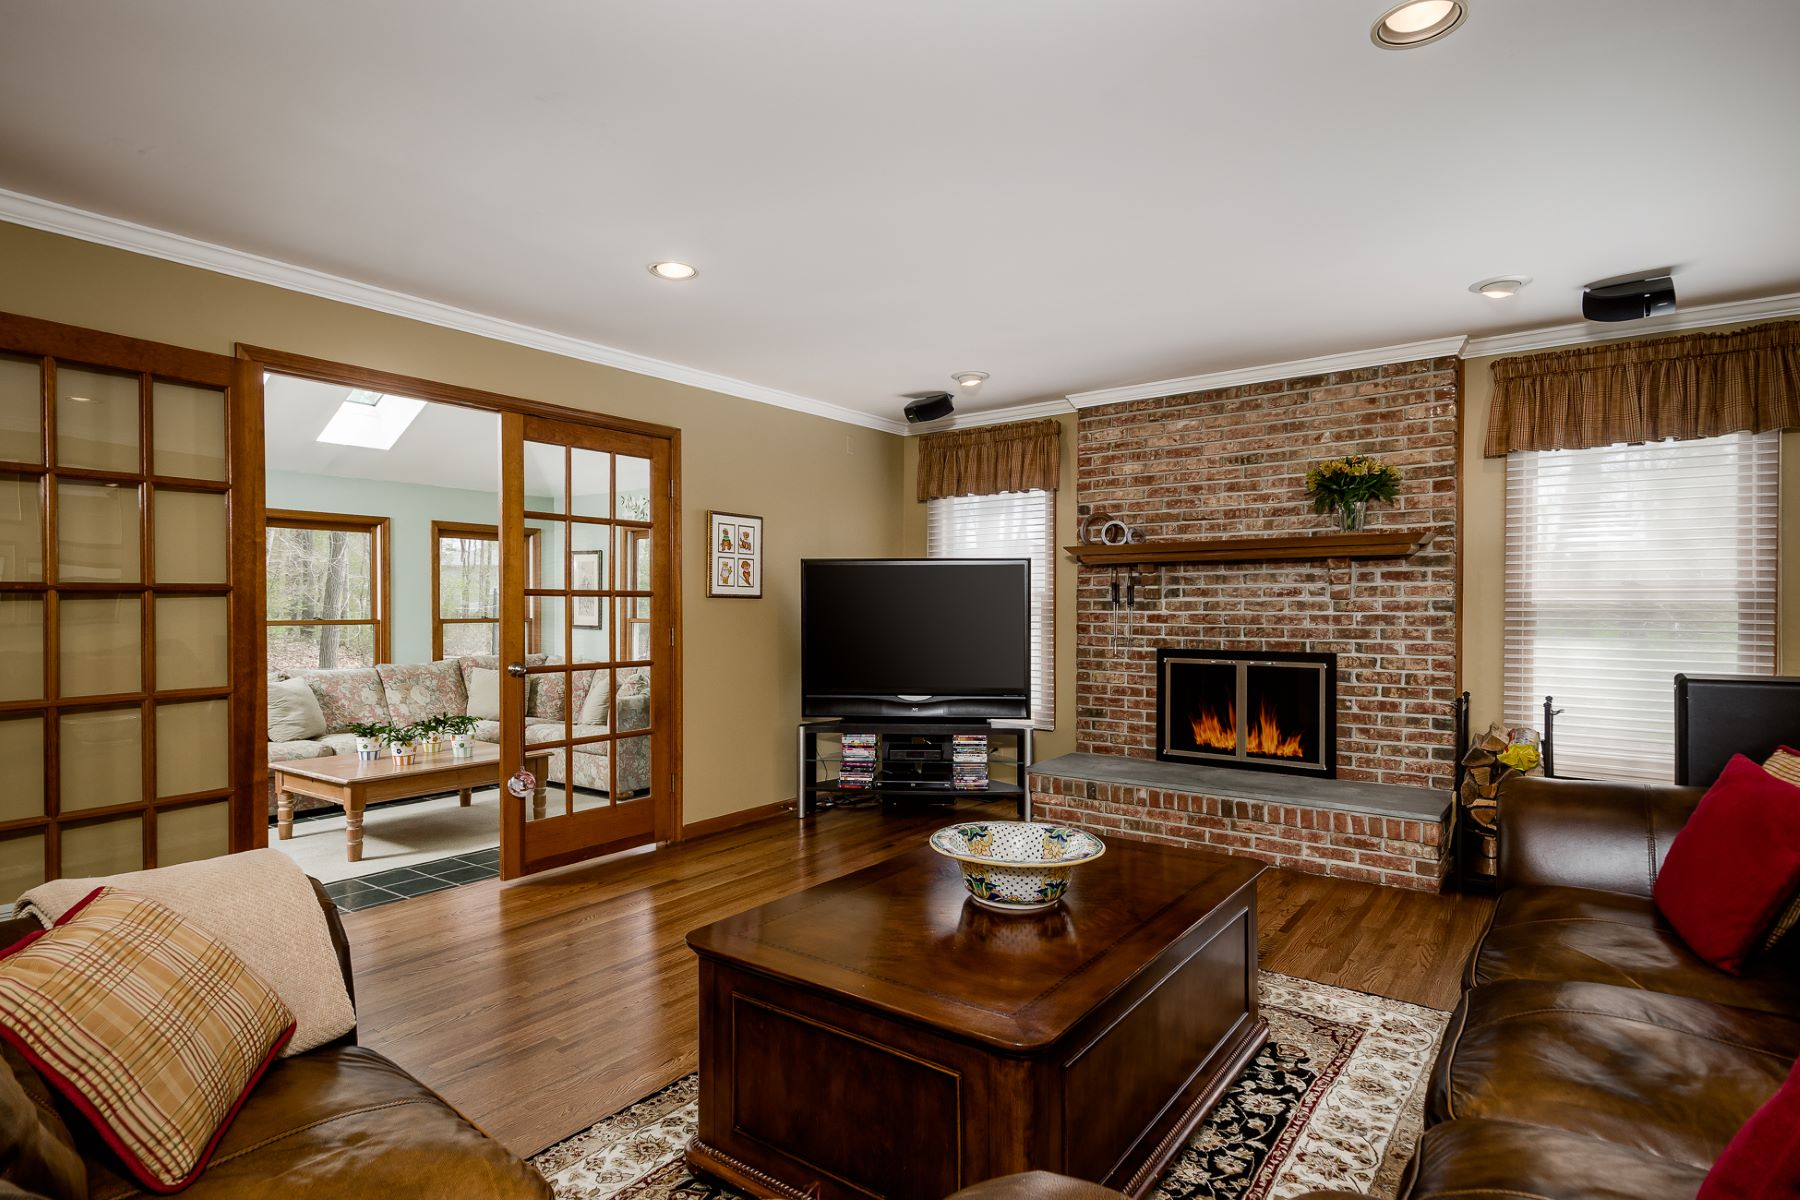 Additional photo for property listing at A Premium Position on a Manicured Cul-De-Sac 16 Blackhawk Court, West Windsor, New Jersey 08550 United States